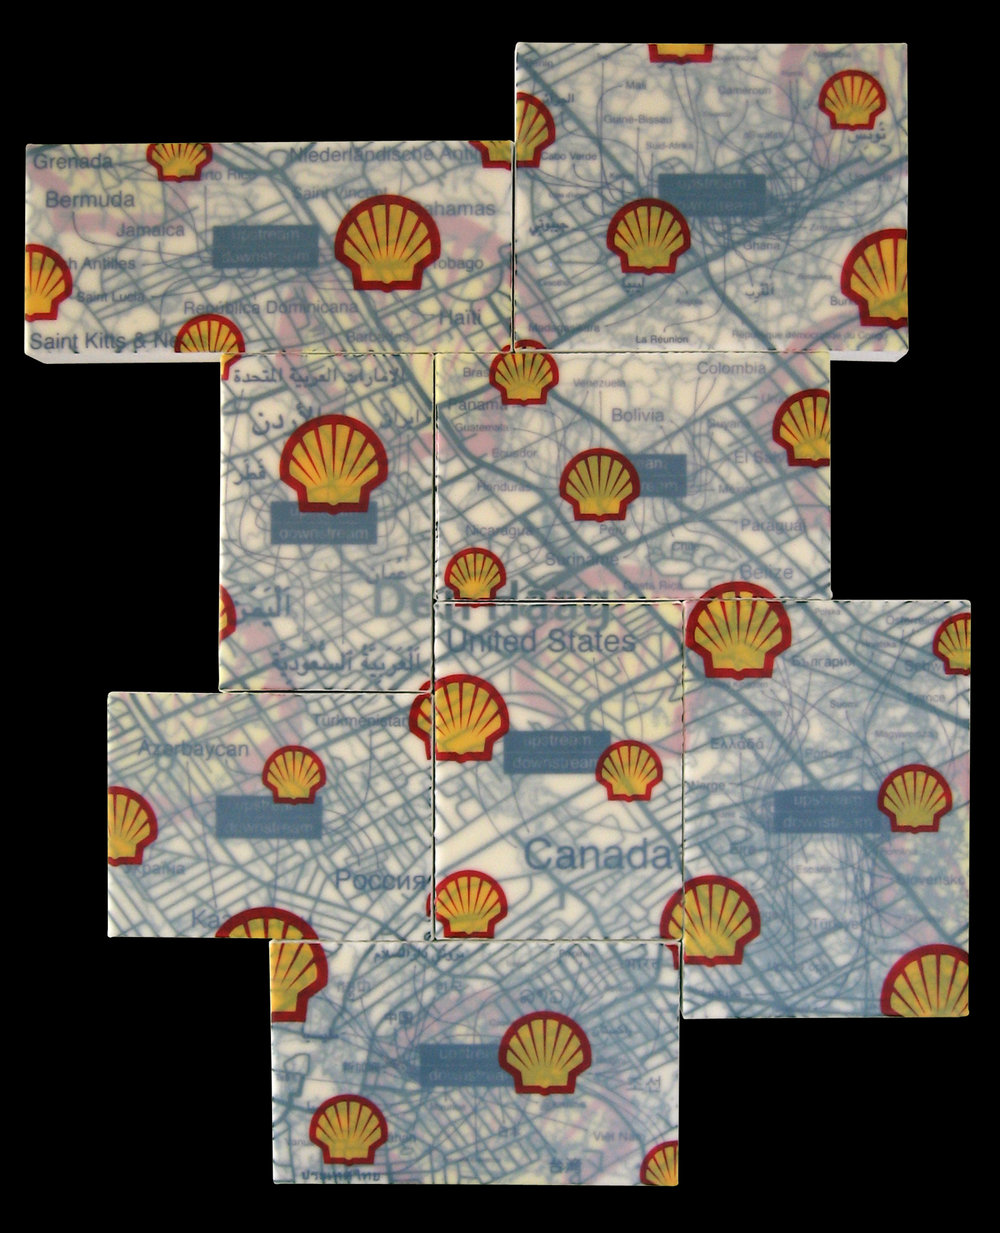 """Royal Dutch/Shell Group"" acrylic, screen print and glue on canvas 36""x24"" 2007"